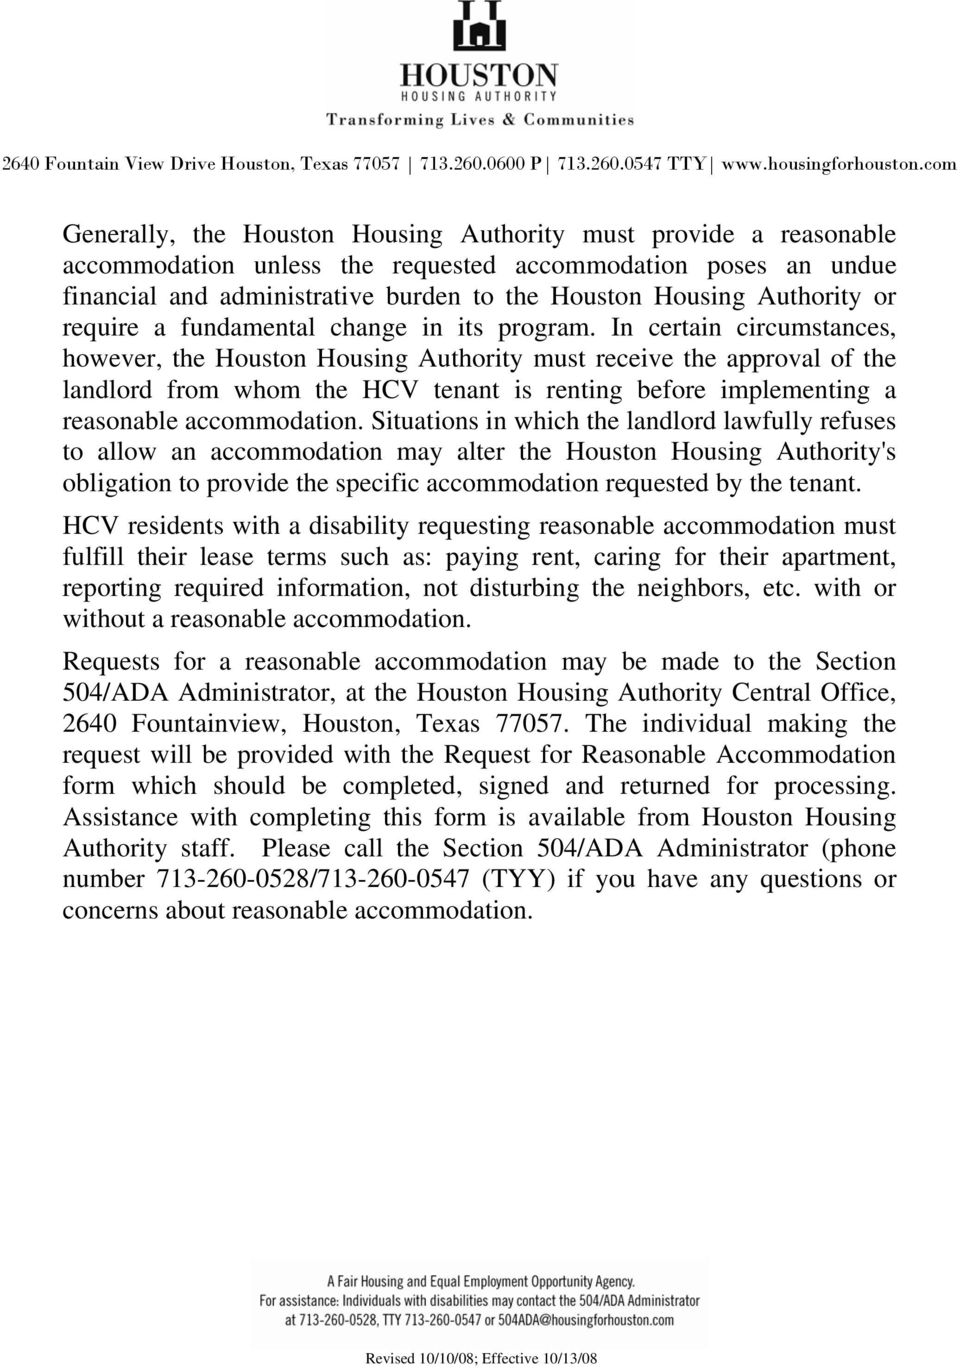 In certain circumstances, however, the Houston Housing Authority must receive the approval of the landlord from whom the HCV tenant is renting before implementing a reasonable accommodation.